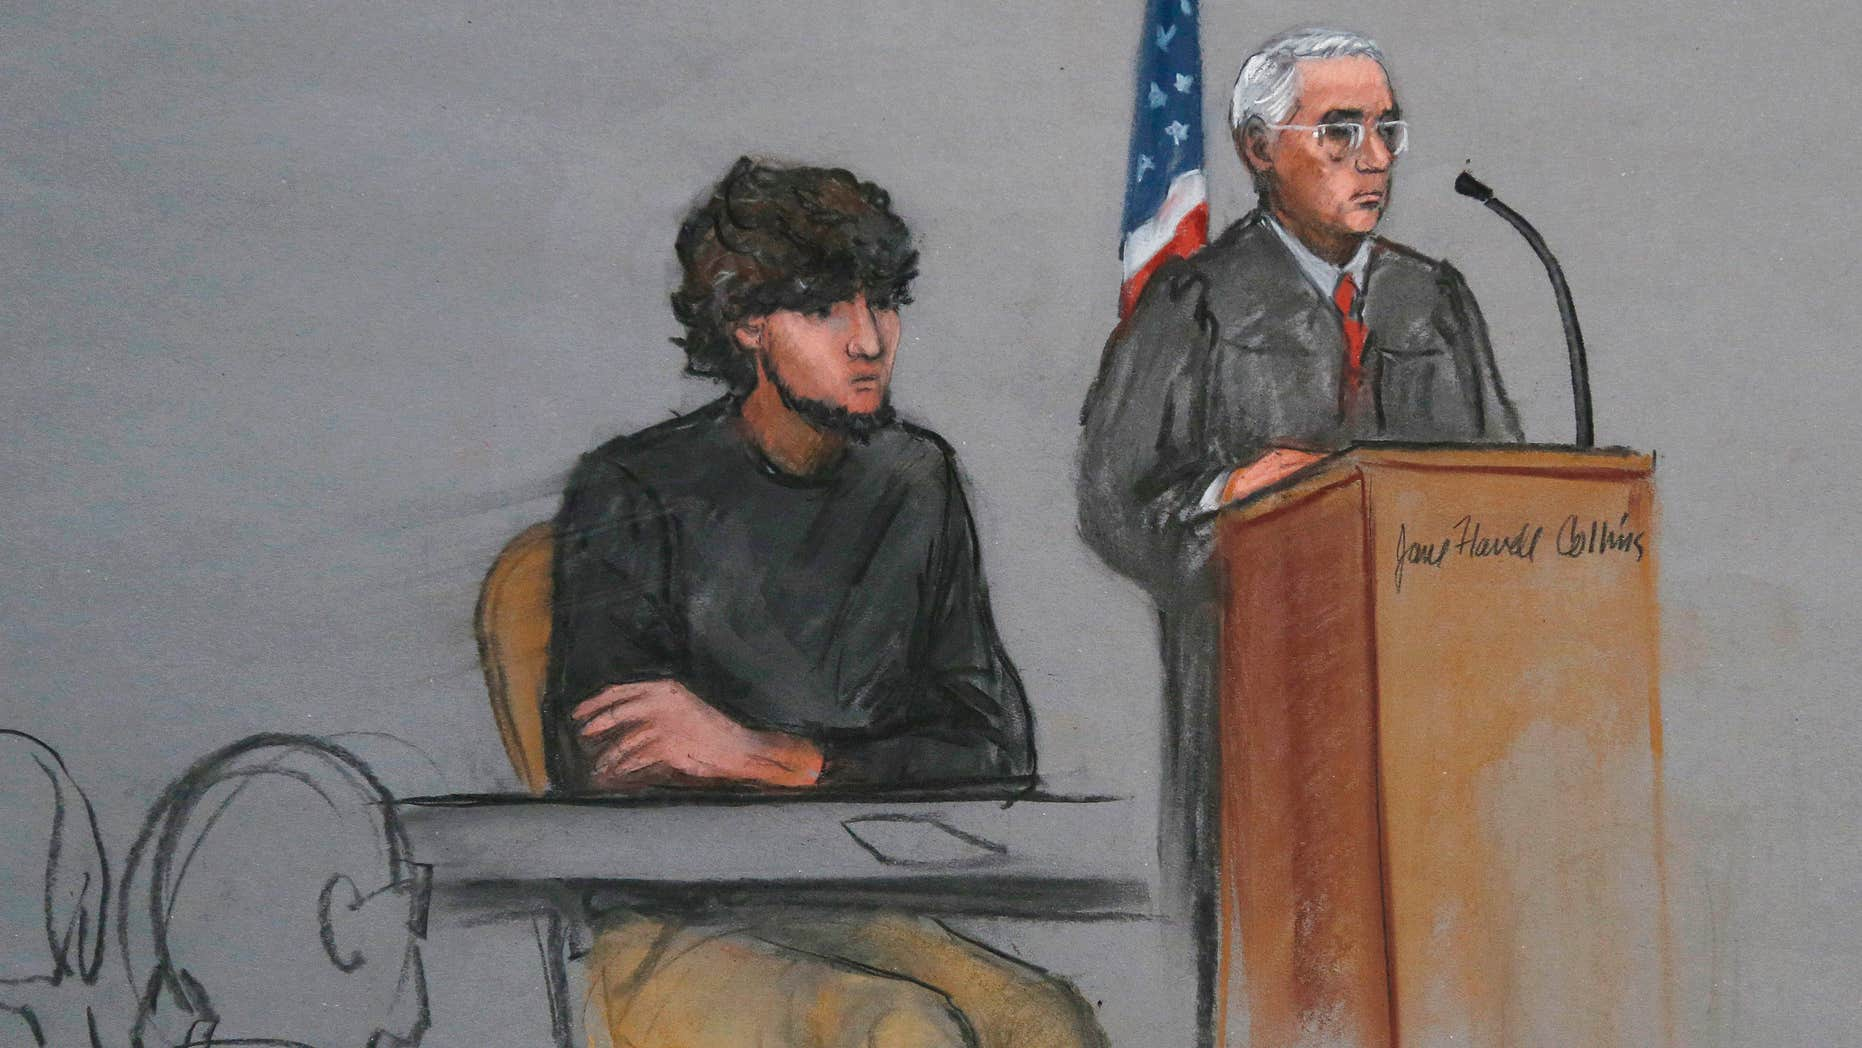 Jan. 5, 2015:  File courtroom sketch, Boston Marathon bombing suspect Dzhokhar Tsarnaev, left, is depicted beside U.S. District Judge George O'Toole Jr., right, as O'Toole addresses a pool of potential jurors in a jury assembly room at the federal courthouse, in Boston.